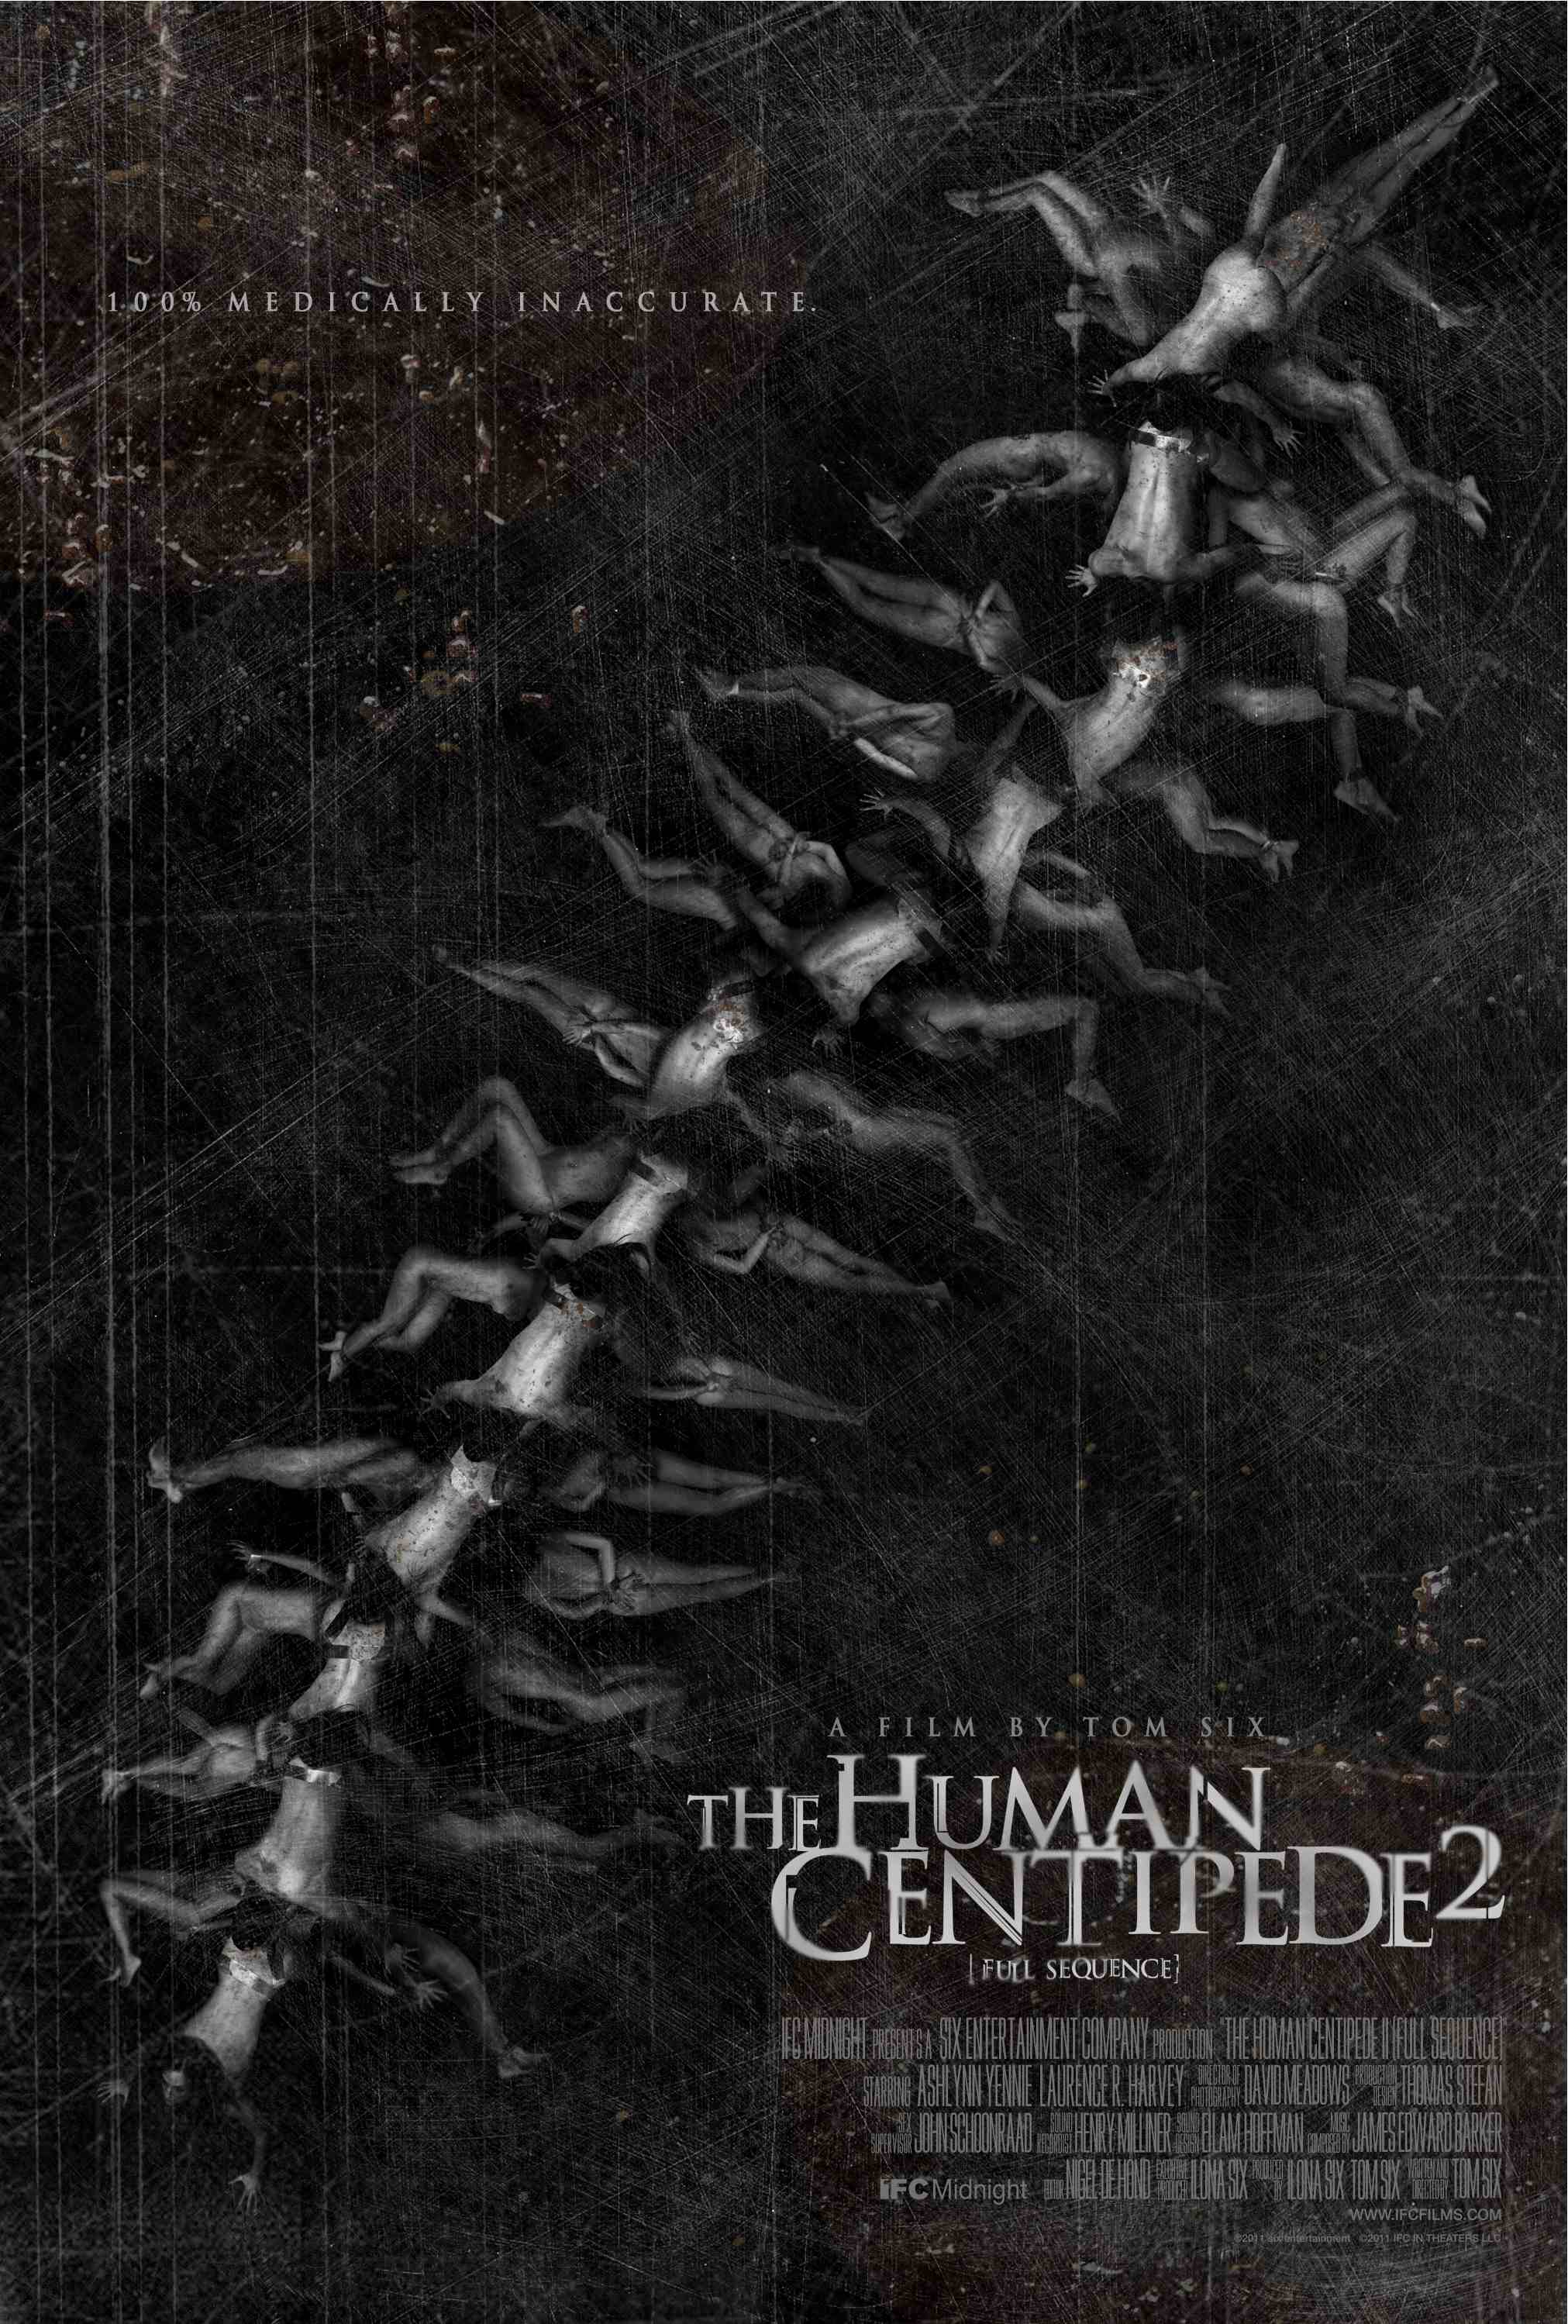 New Poster for 'The Human Centipede 2′ Gives You a Taste of its Twisted Horror